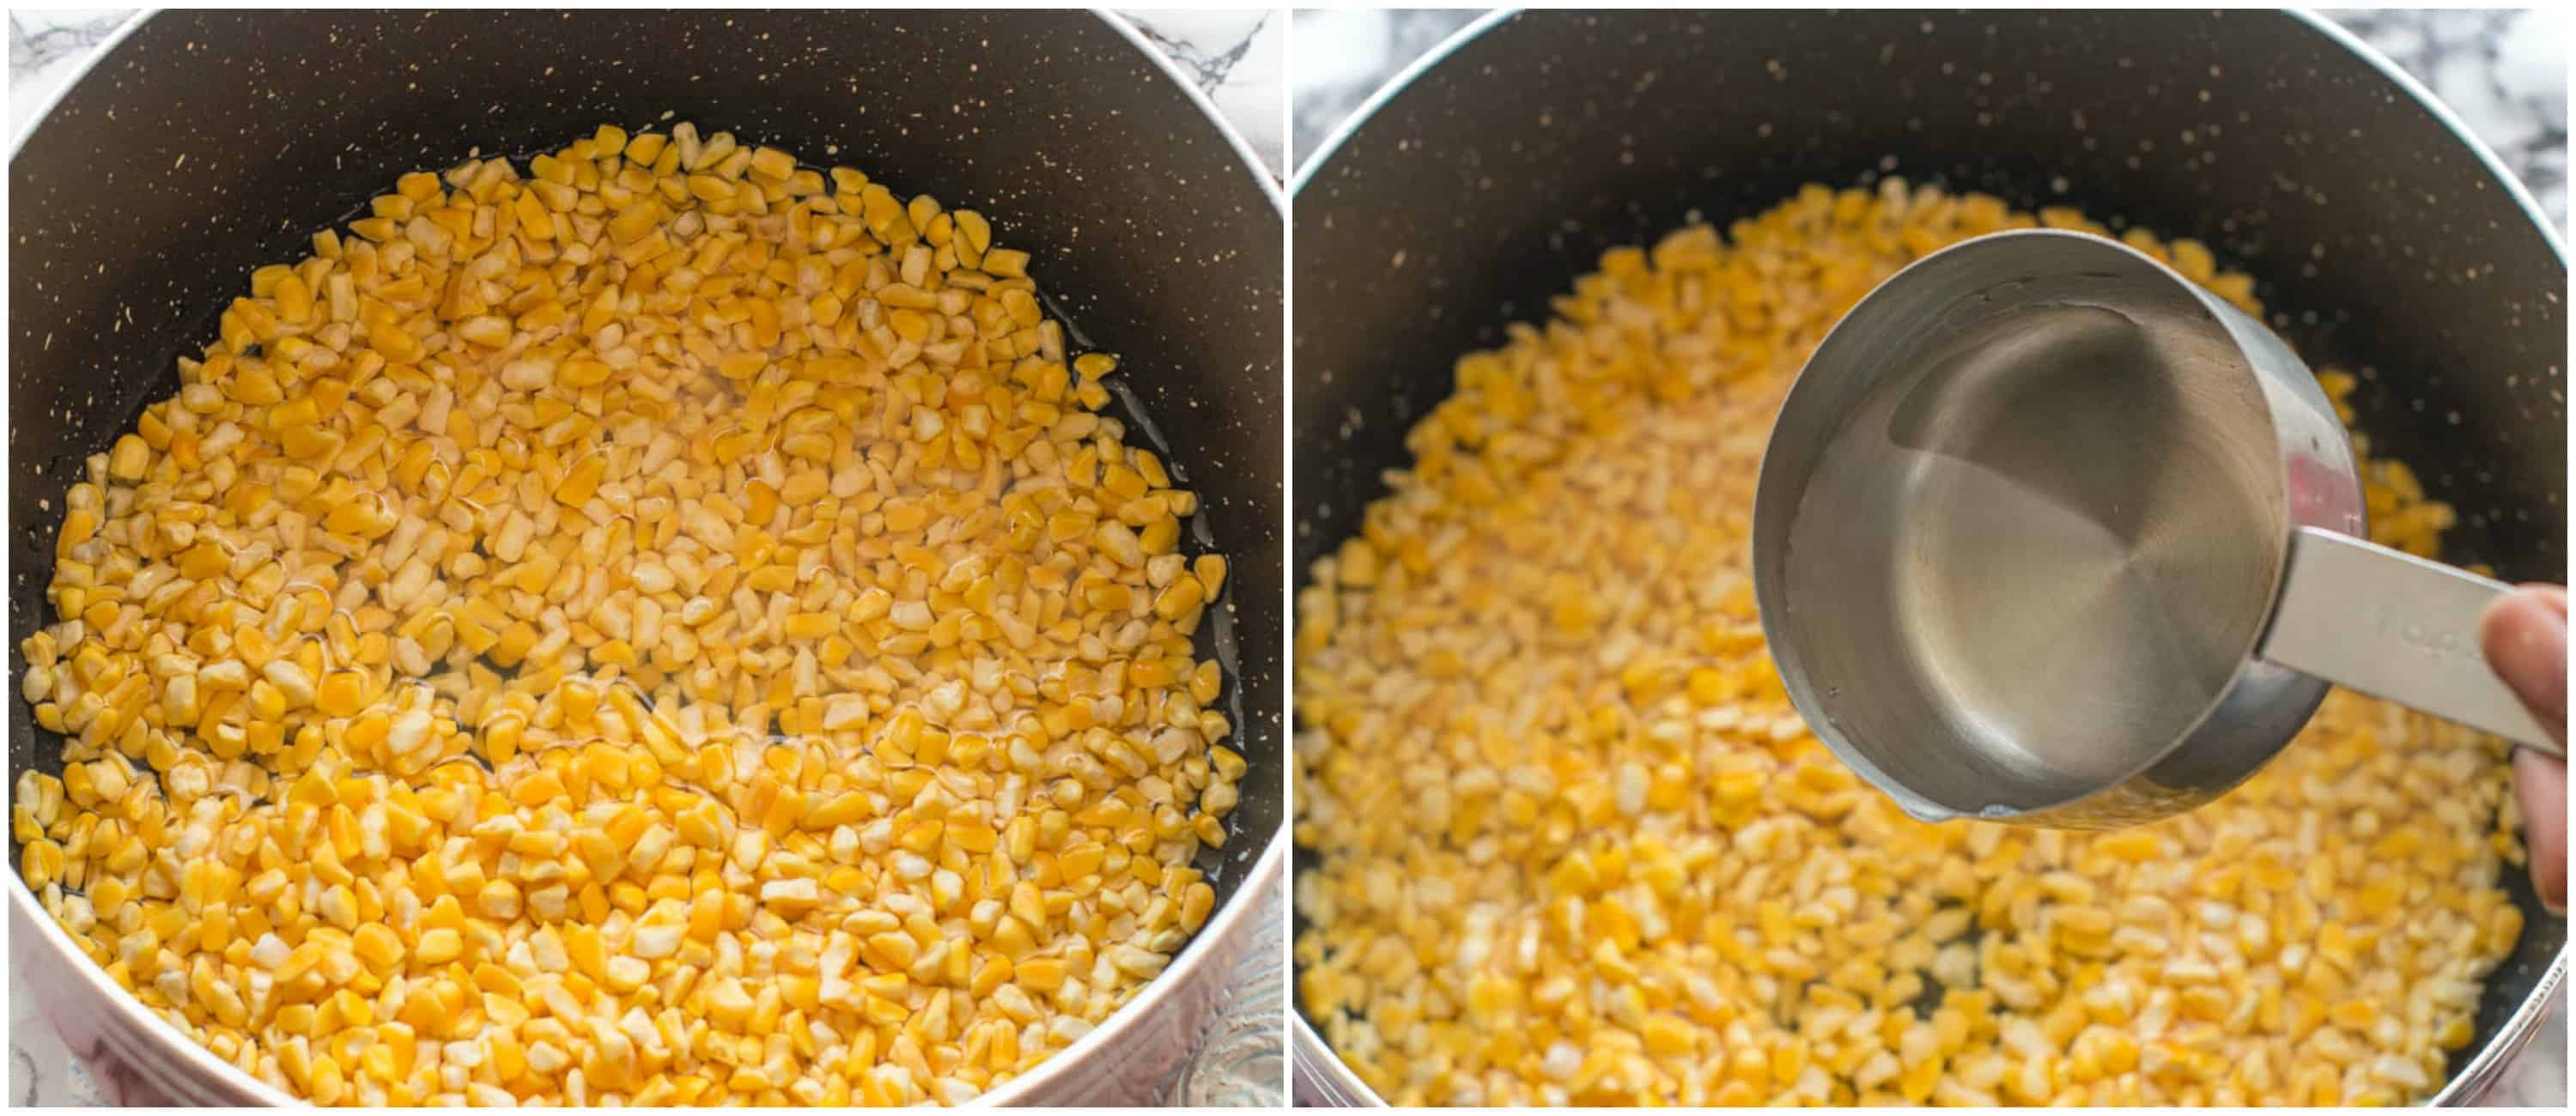 hominy corn porridge steps 1-2